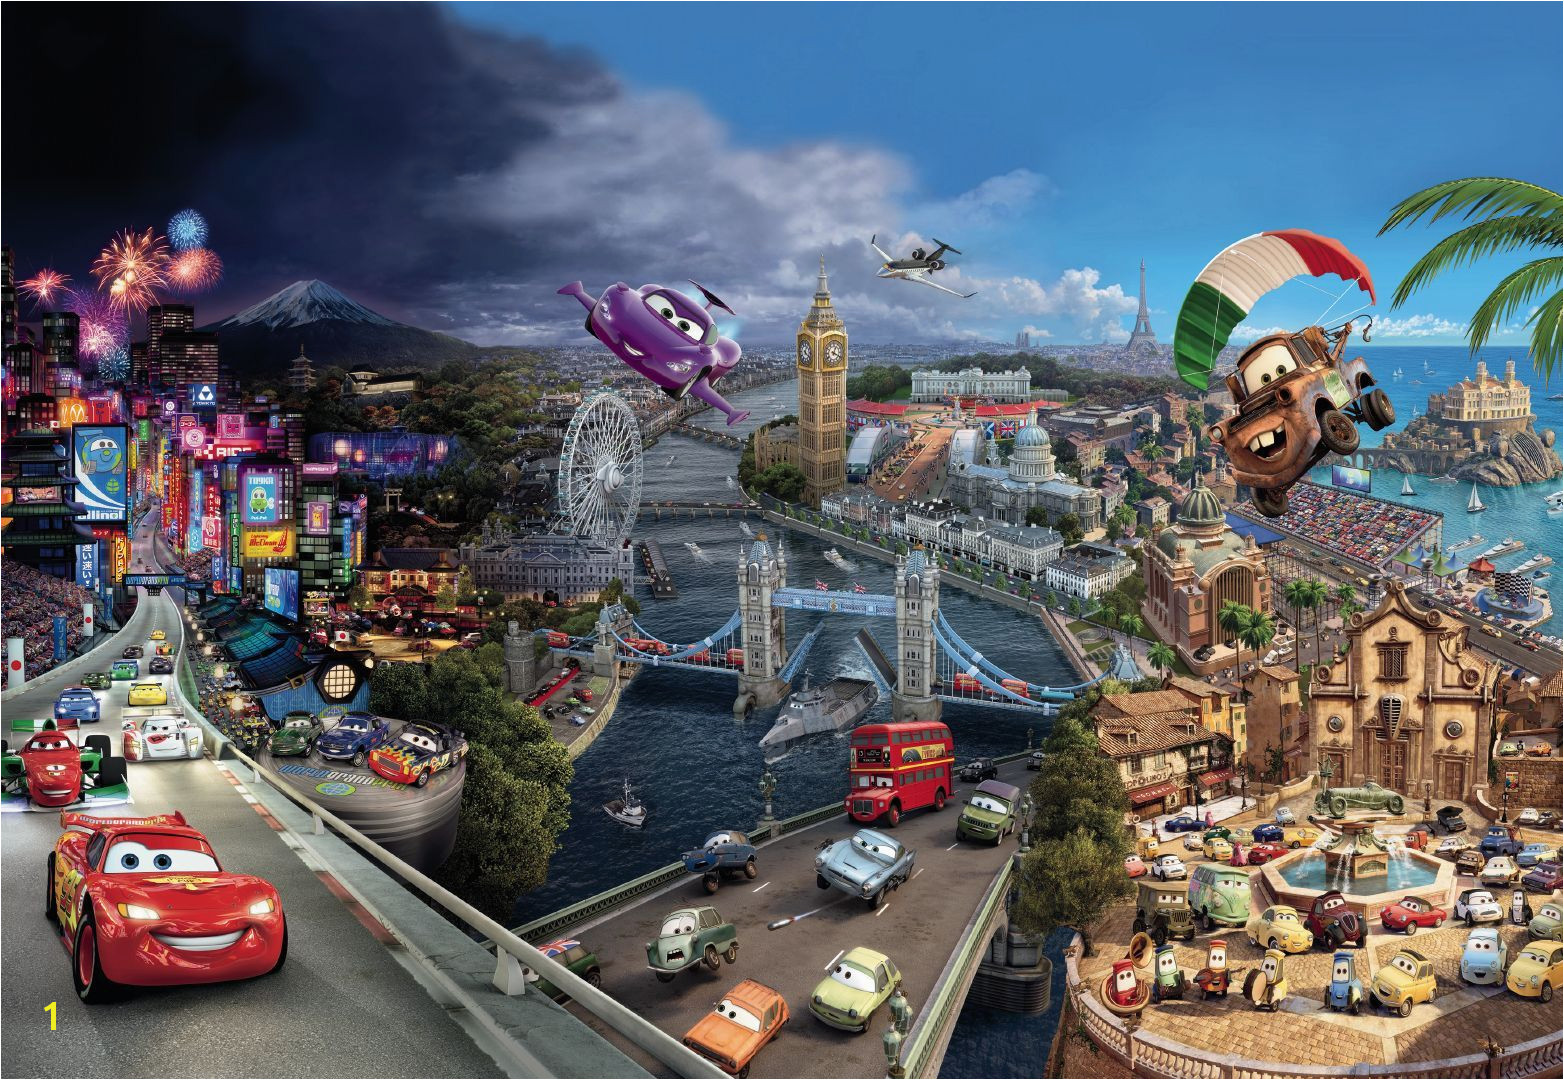 Disney Pixar Cars Wall Mural Wallpapers